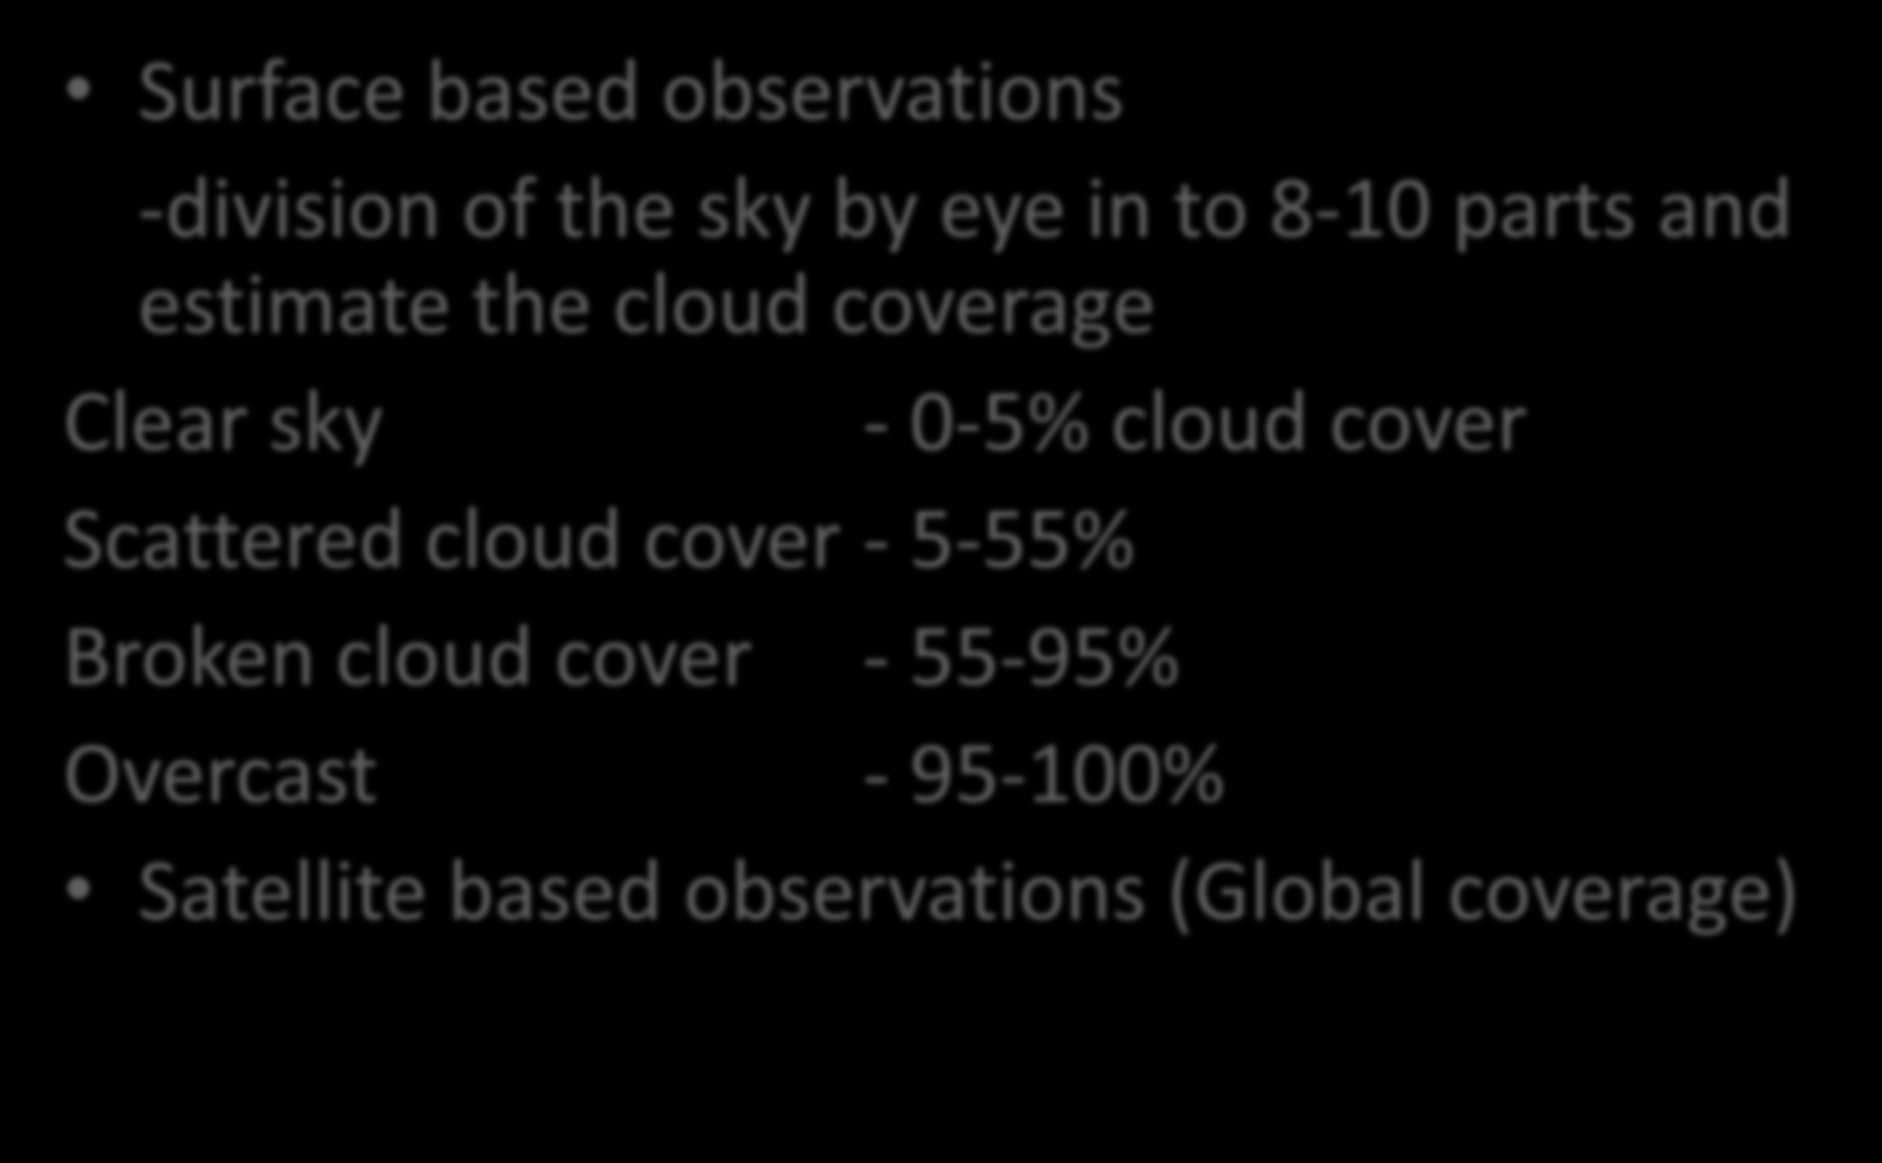 CLOUD OBSERVATION Surface based observations -division of the sky by eye in to 8-10 parts and estimate the cloud coverage Clear sky -